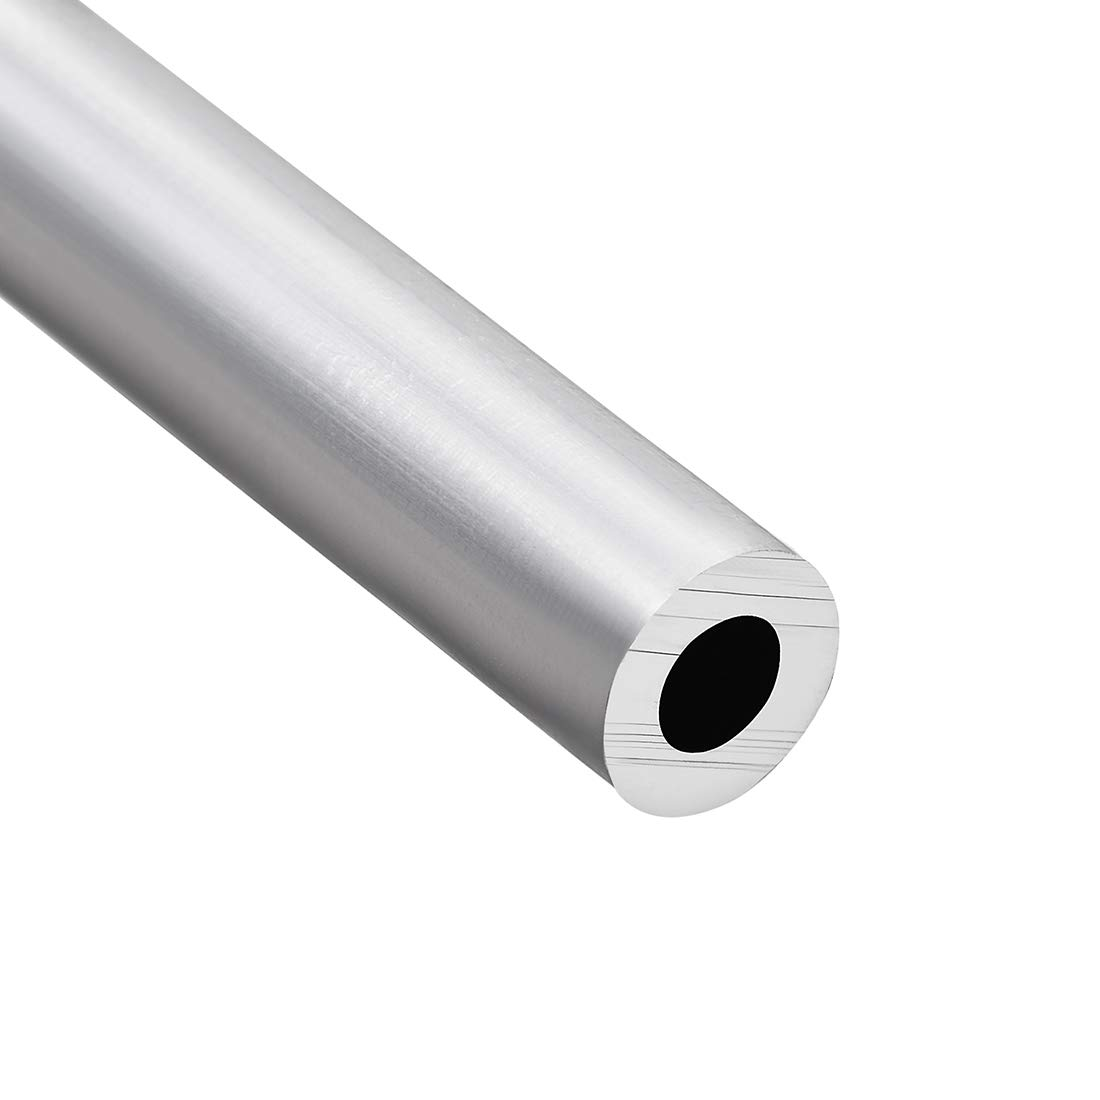 uxcell 4Pcs 6063 Seamless Aluminum Round Straight Tubing Tube 1 Feet Length 0.195 Inches ID 0.39 Inches OD